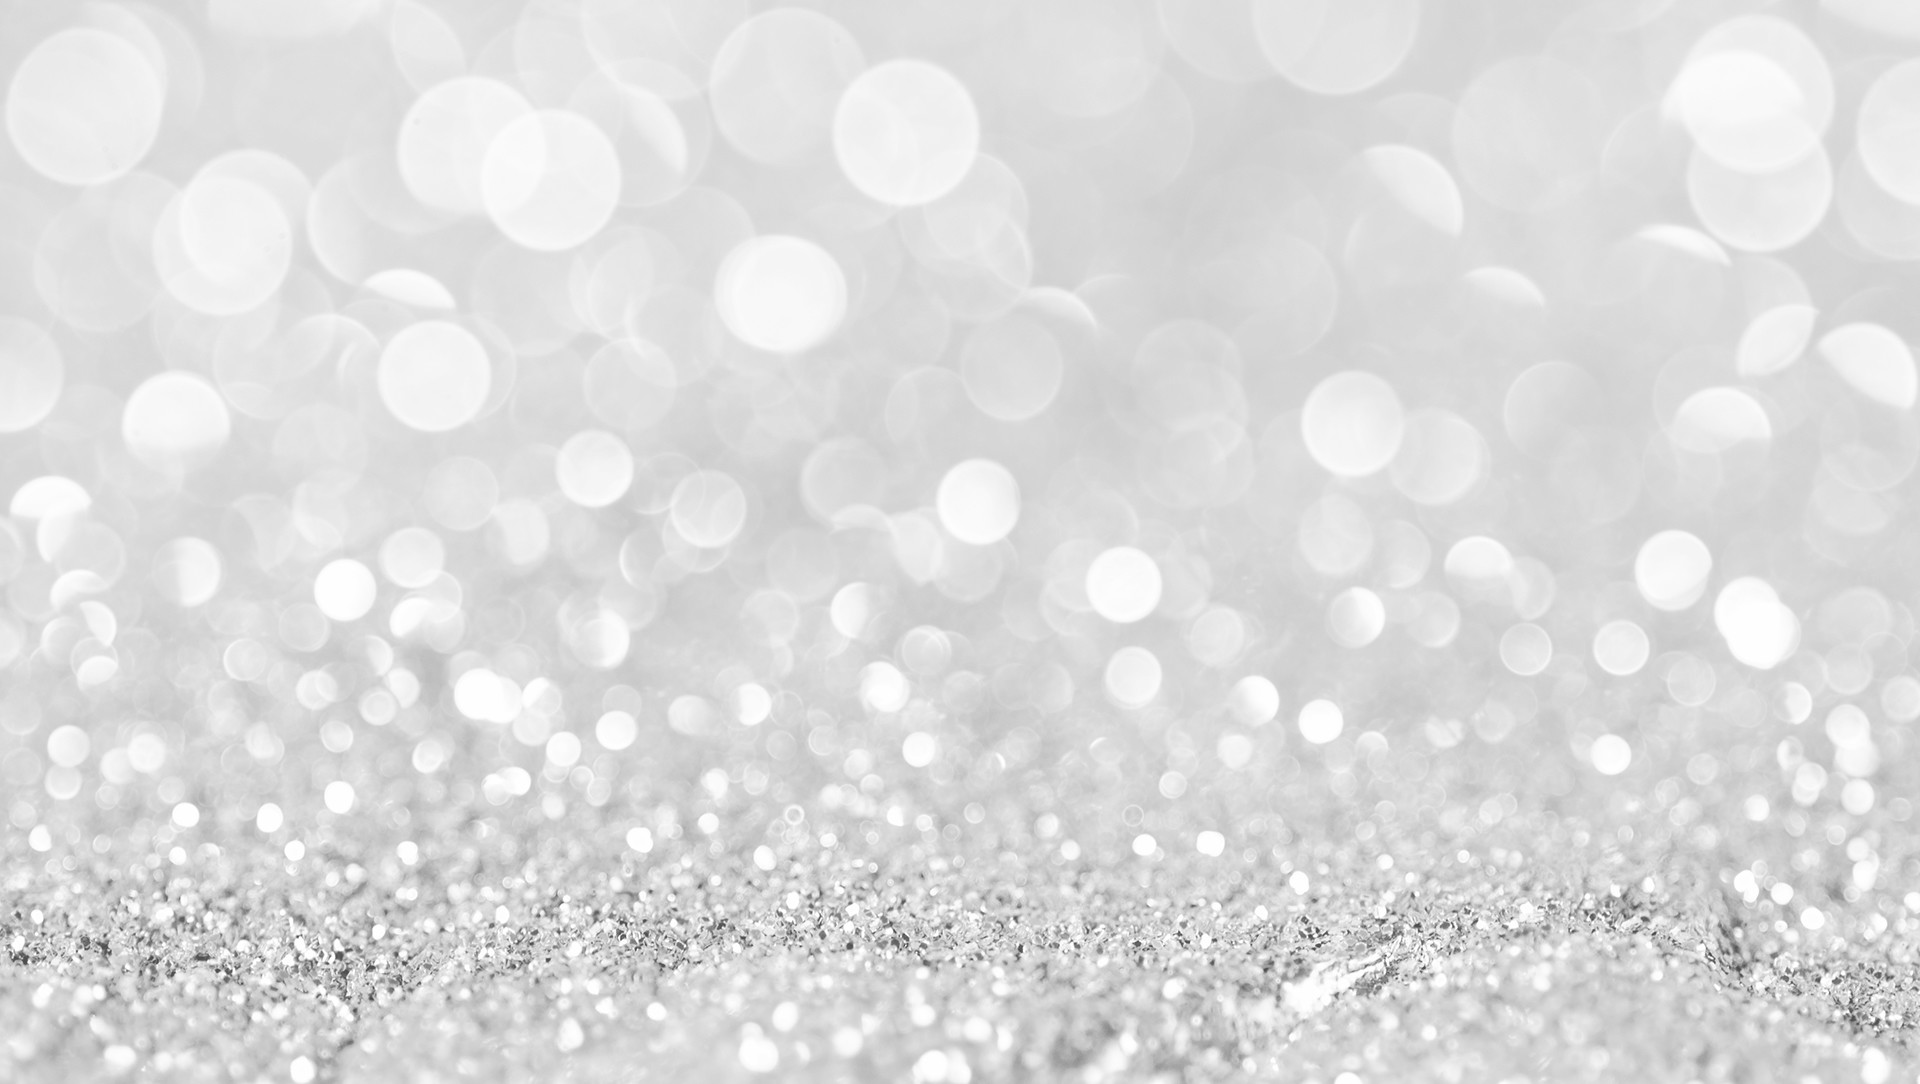 … Silver Glitter Wallpaper HD Picture Live HD Wallpaper HQ Pictures free  powerpoint background